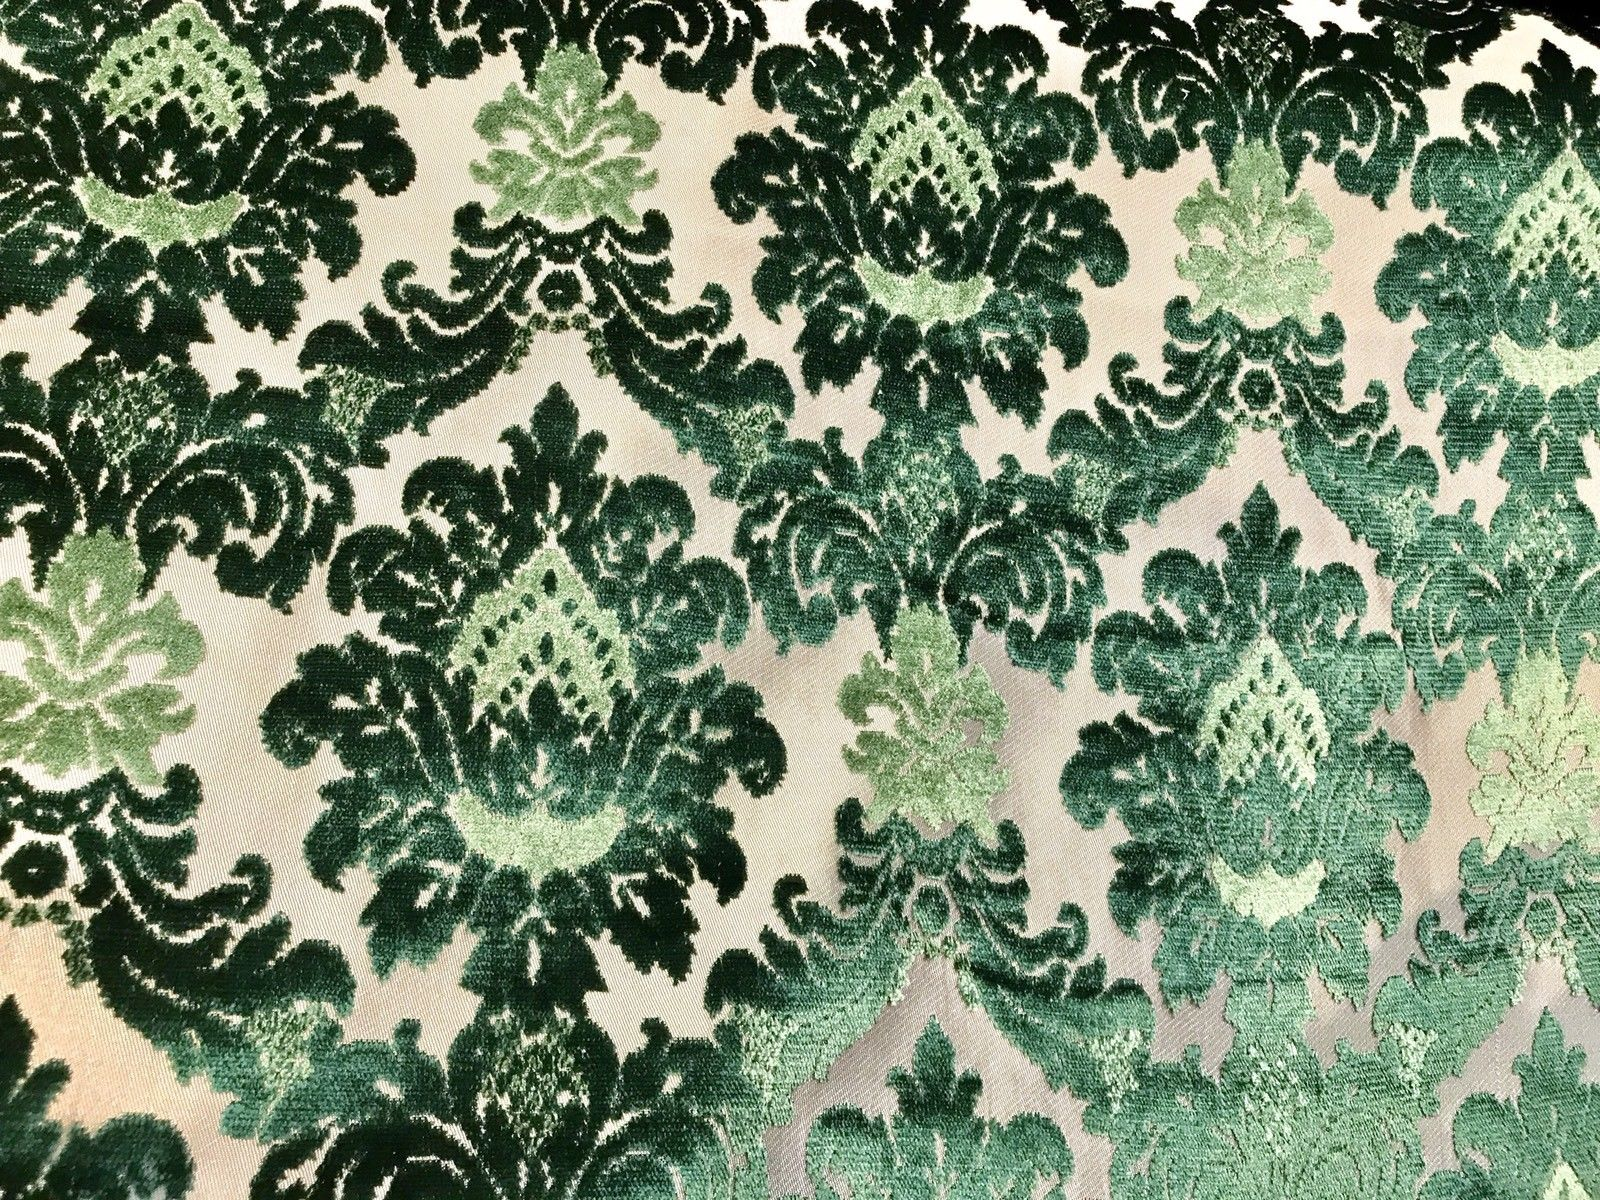 SWATCH Novelty Italian Designer Burnout Damask Velvet Upholstery Fabric - Green - Fancy Styles Fabric Boutique